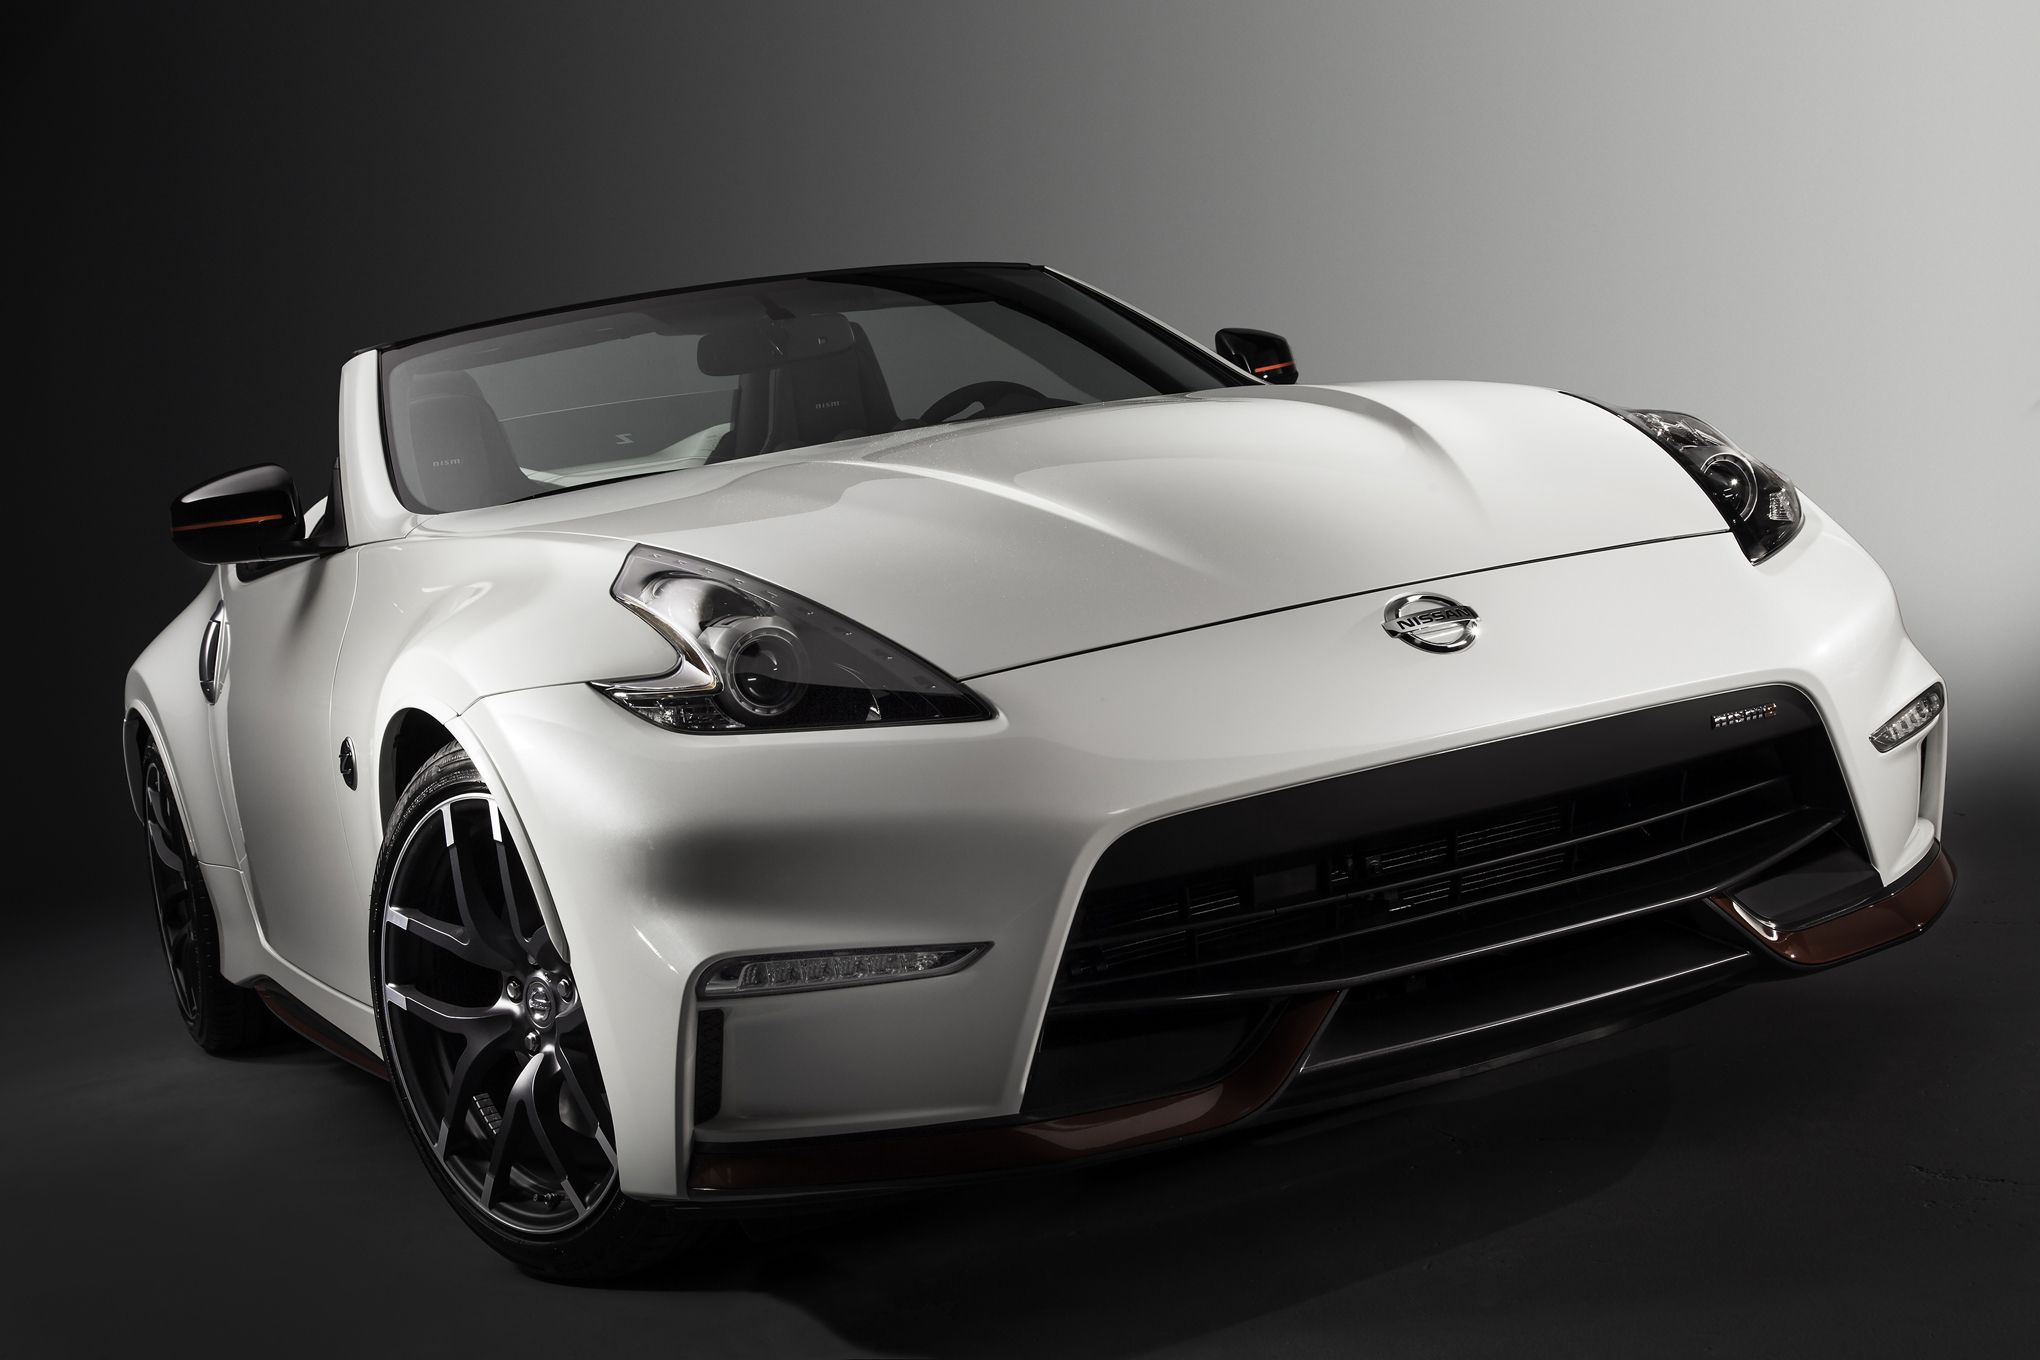 2019 Nissan 370Z Nismo Roadster Concept photo - 2